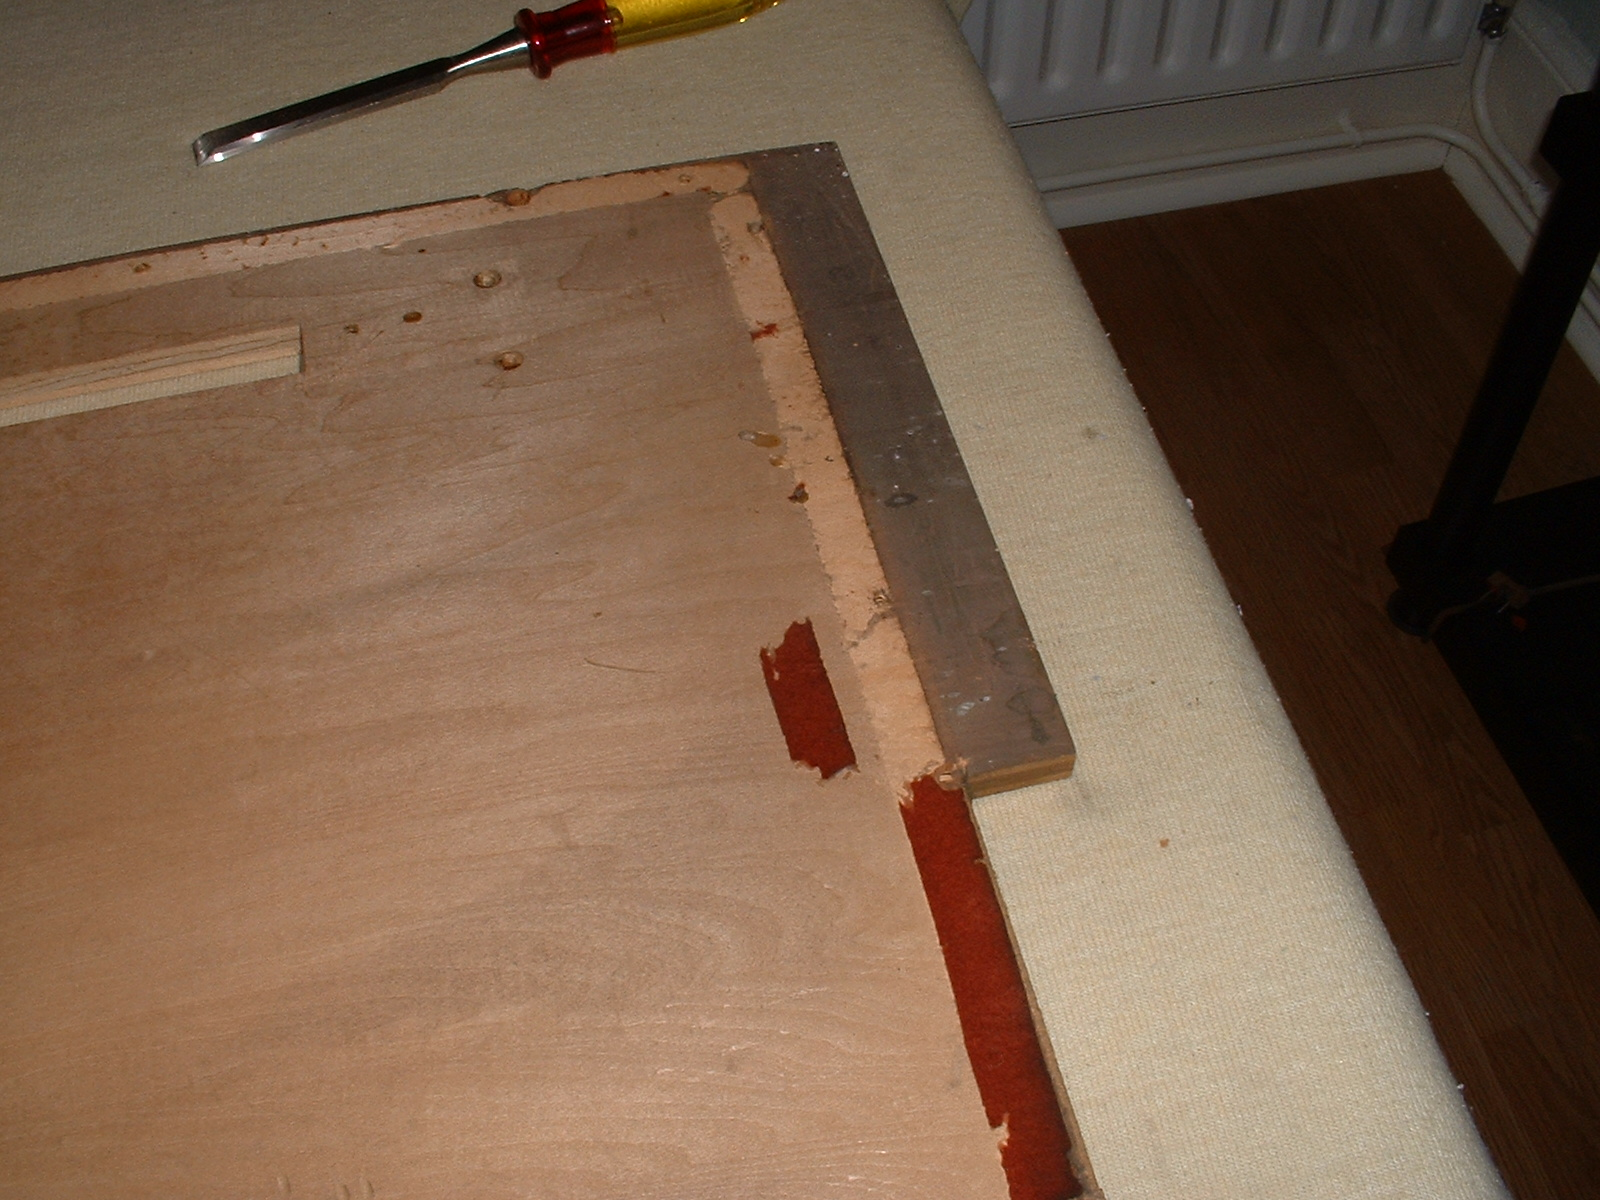 Most of the felt gasket on the bellows platform had been eaten. I replaced it with new felt but would use leather now